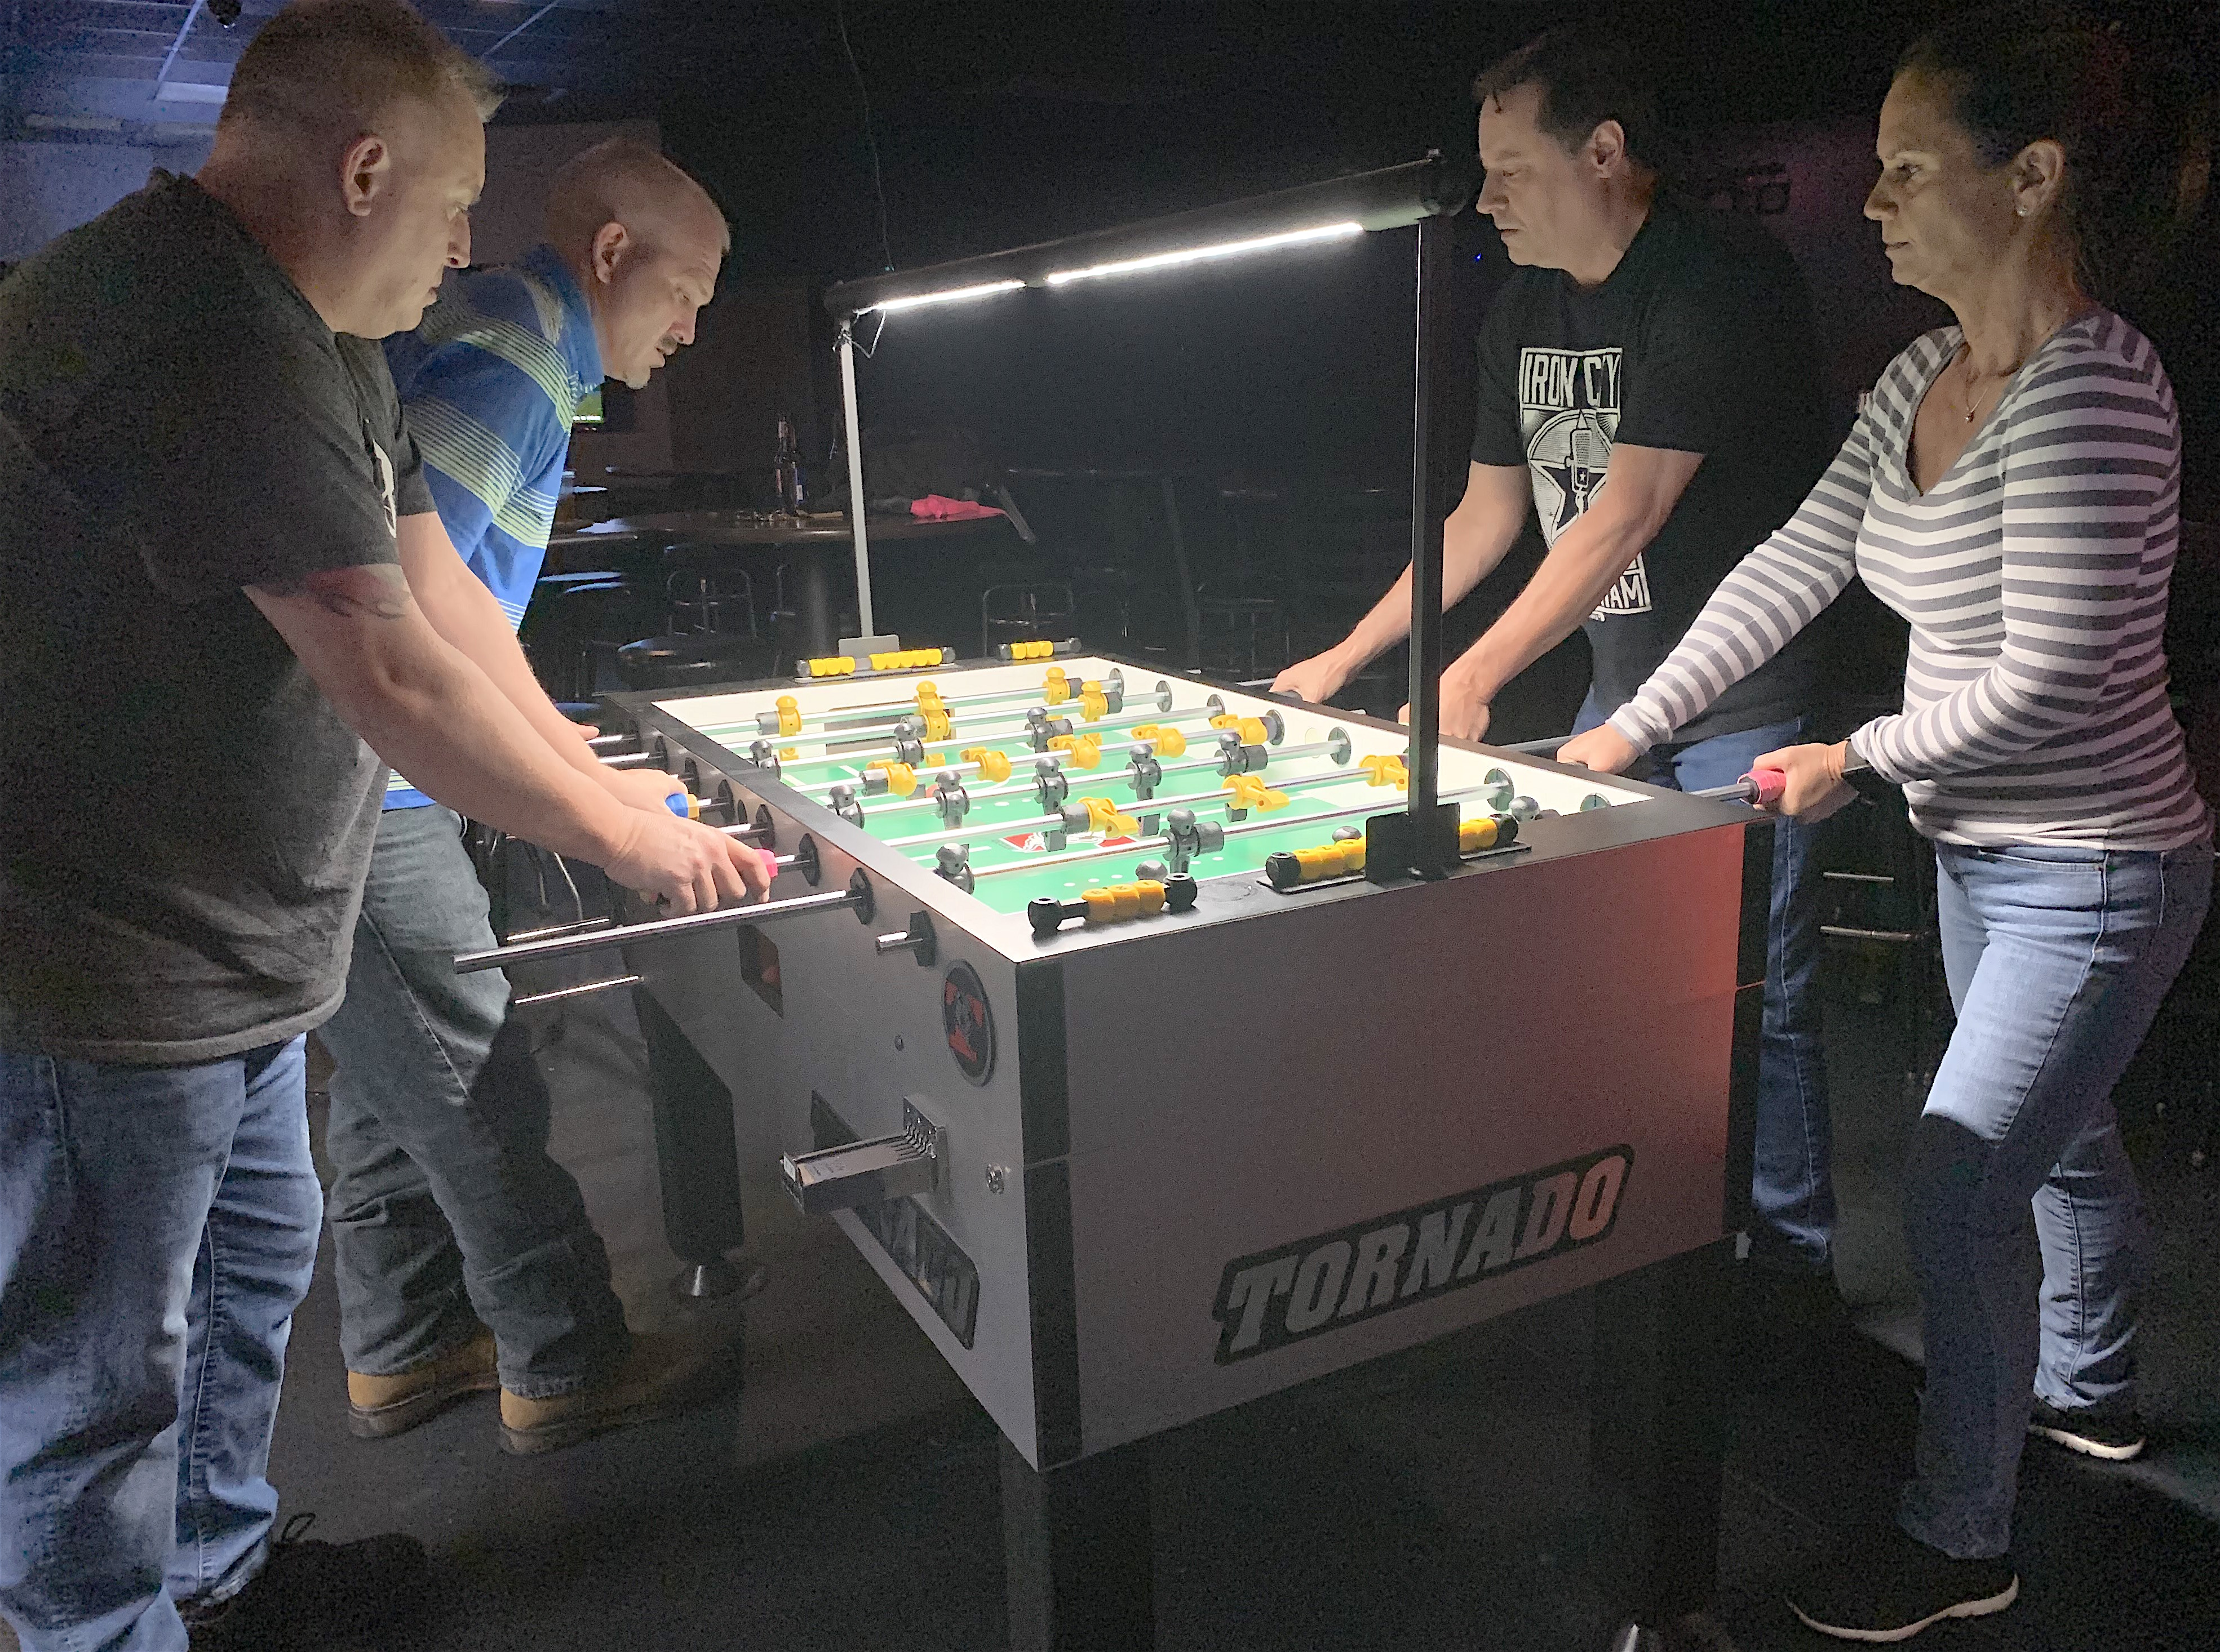 Pictured is Chuck Shikle & Jeremy Monroe vs James Porter & Cheryl Lowe during 2019 foosball tournament action at Madison Station in North Alabama.